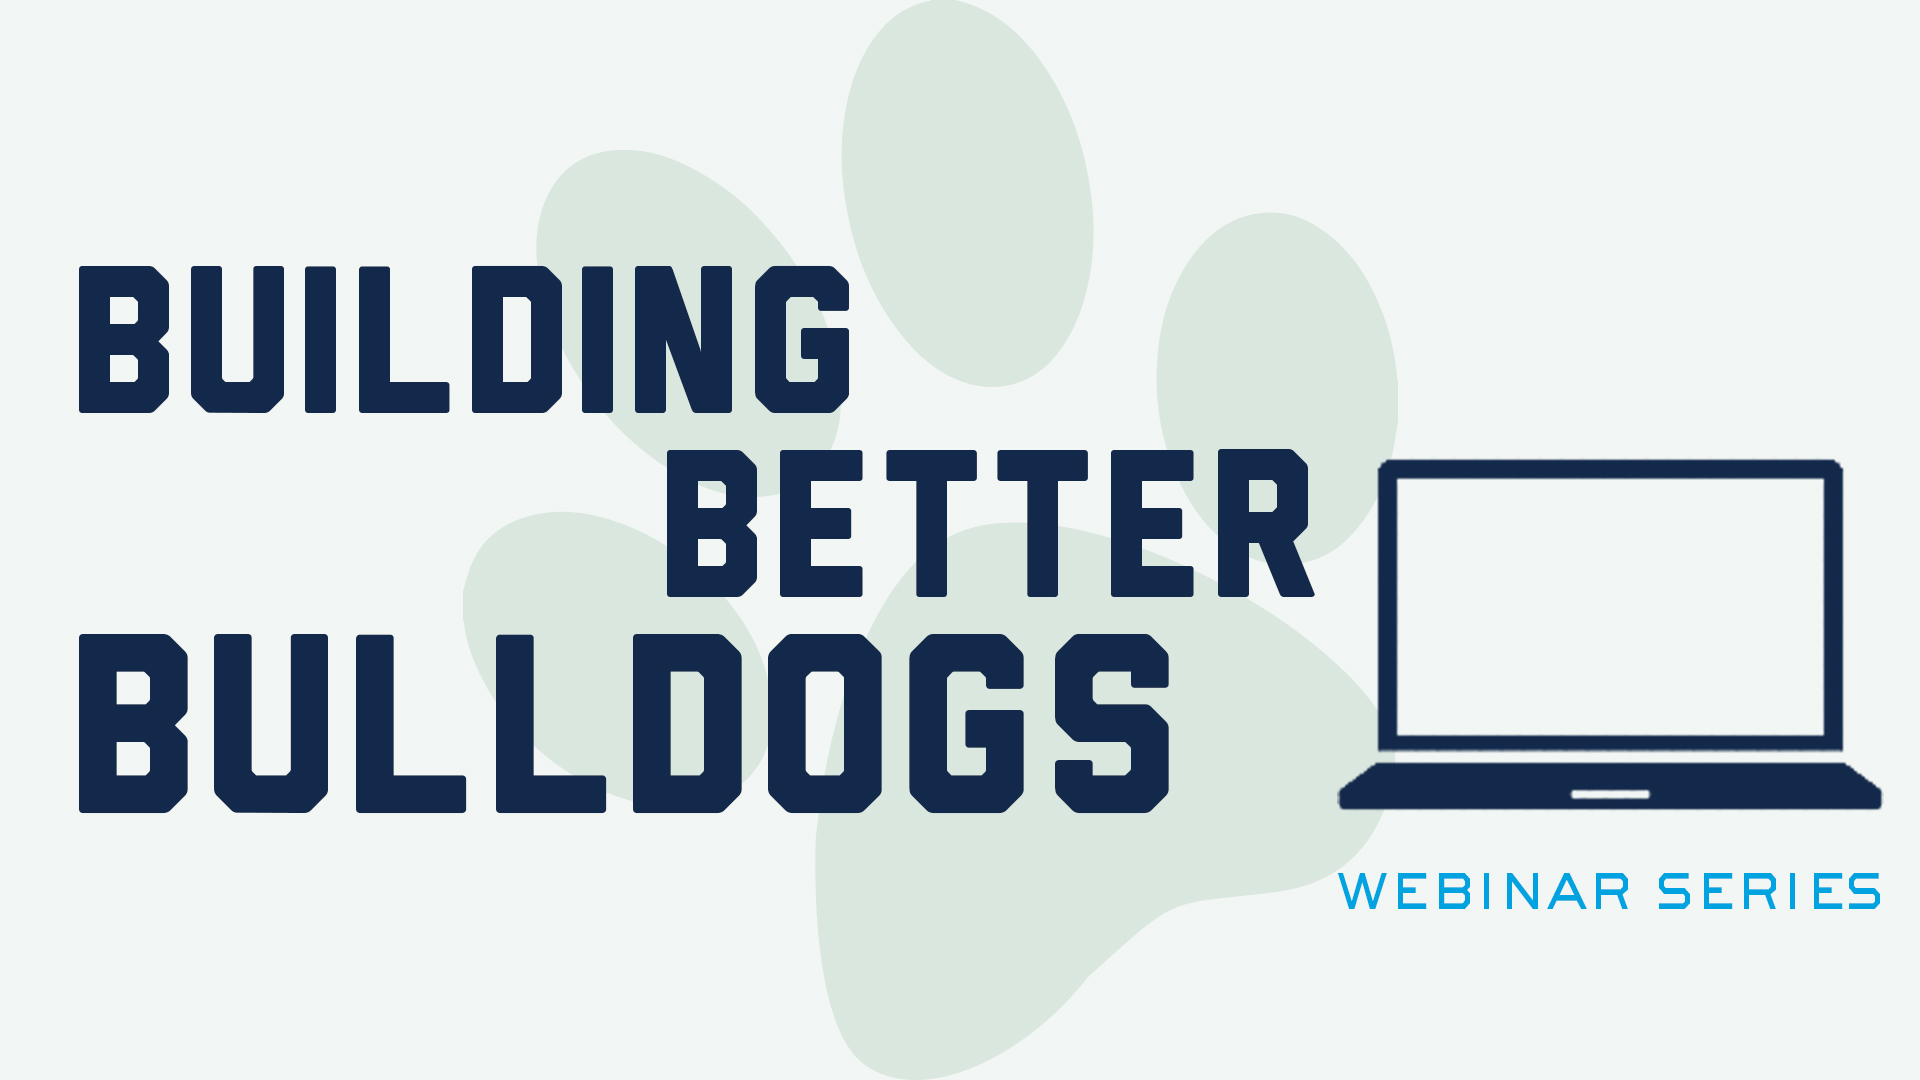 Building Better Bulldogs: Applying to Grad School and What You Need to Know